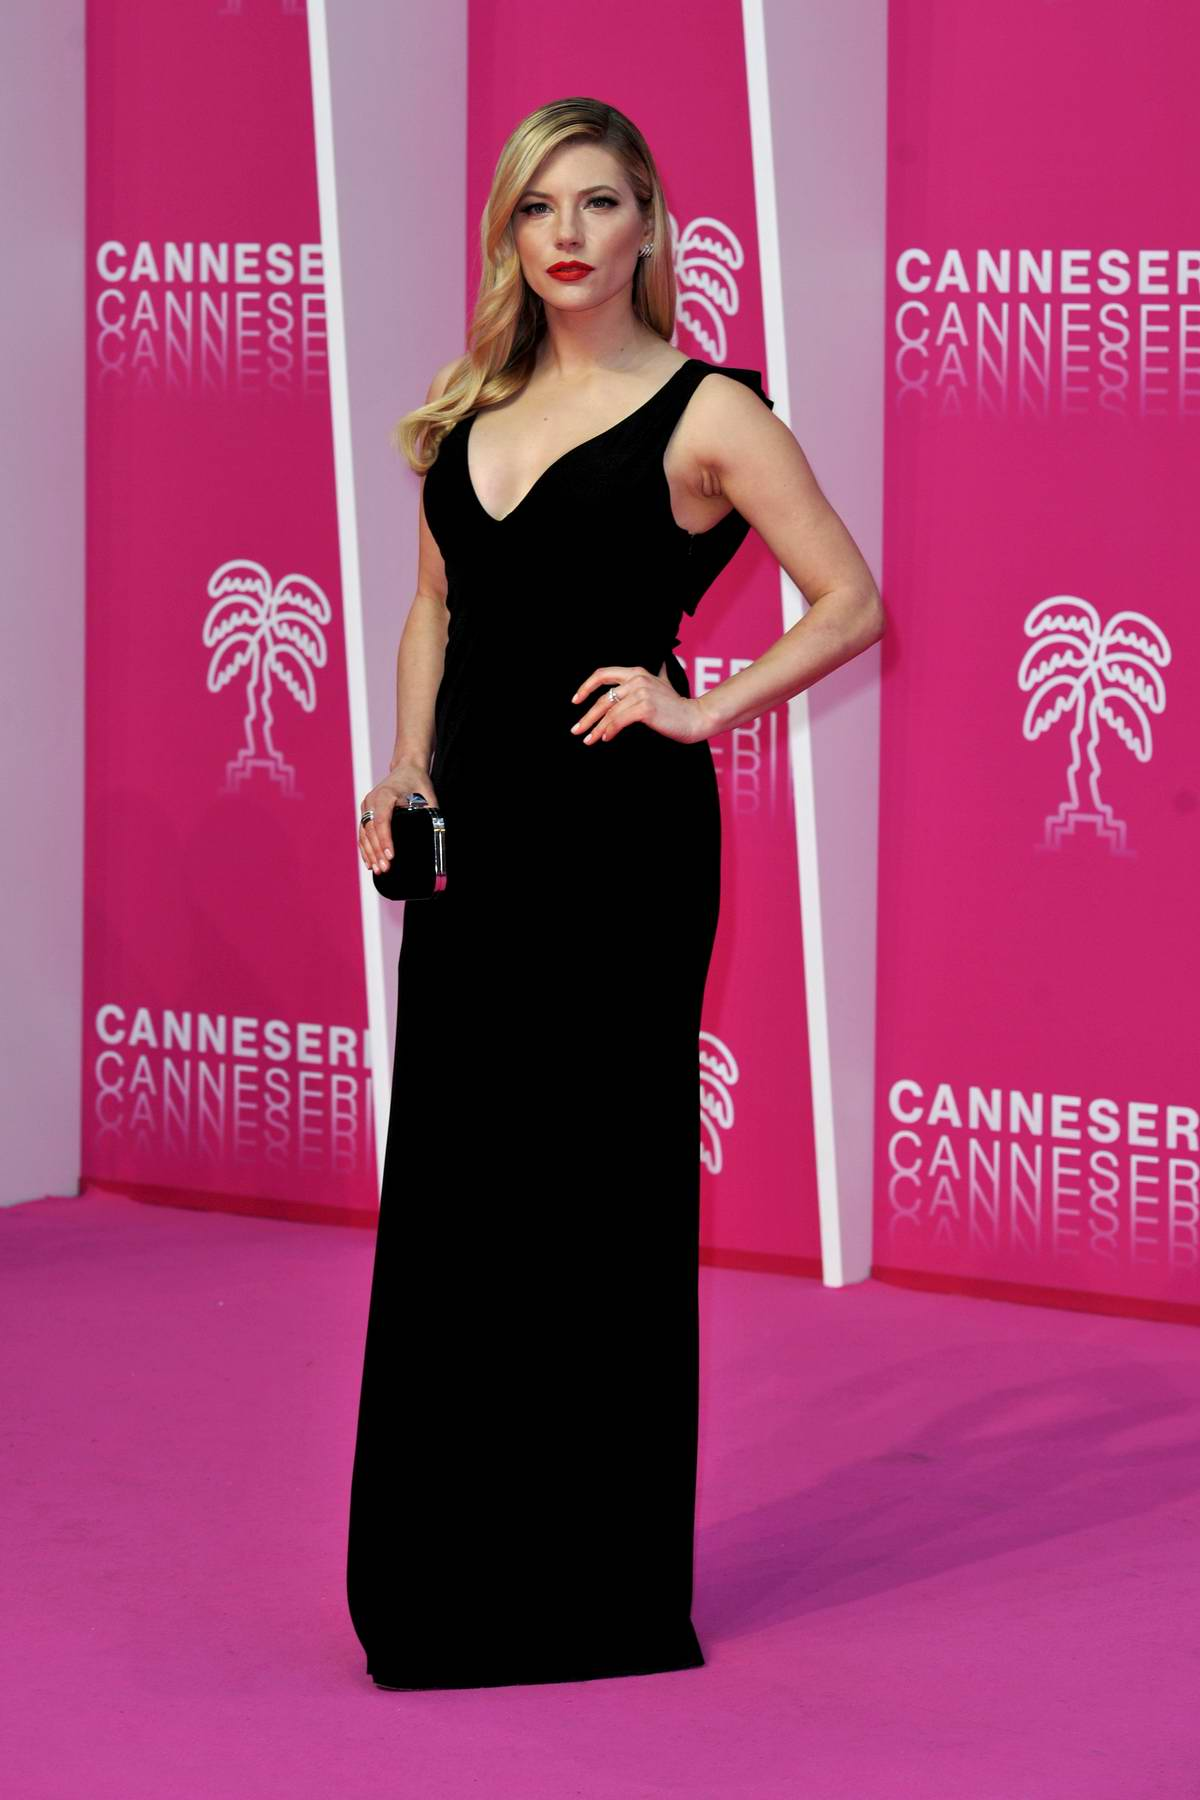 Katheryn Winnick attends 'The Rook' premiere during the 2nd Canneseries International Series Festival - Day 04 in Cannes, France